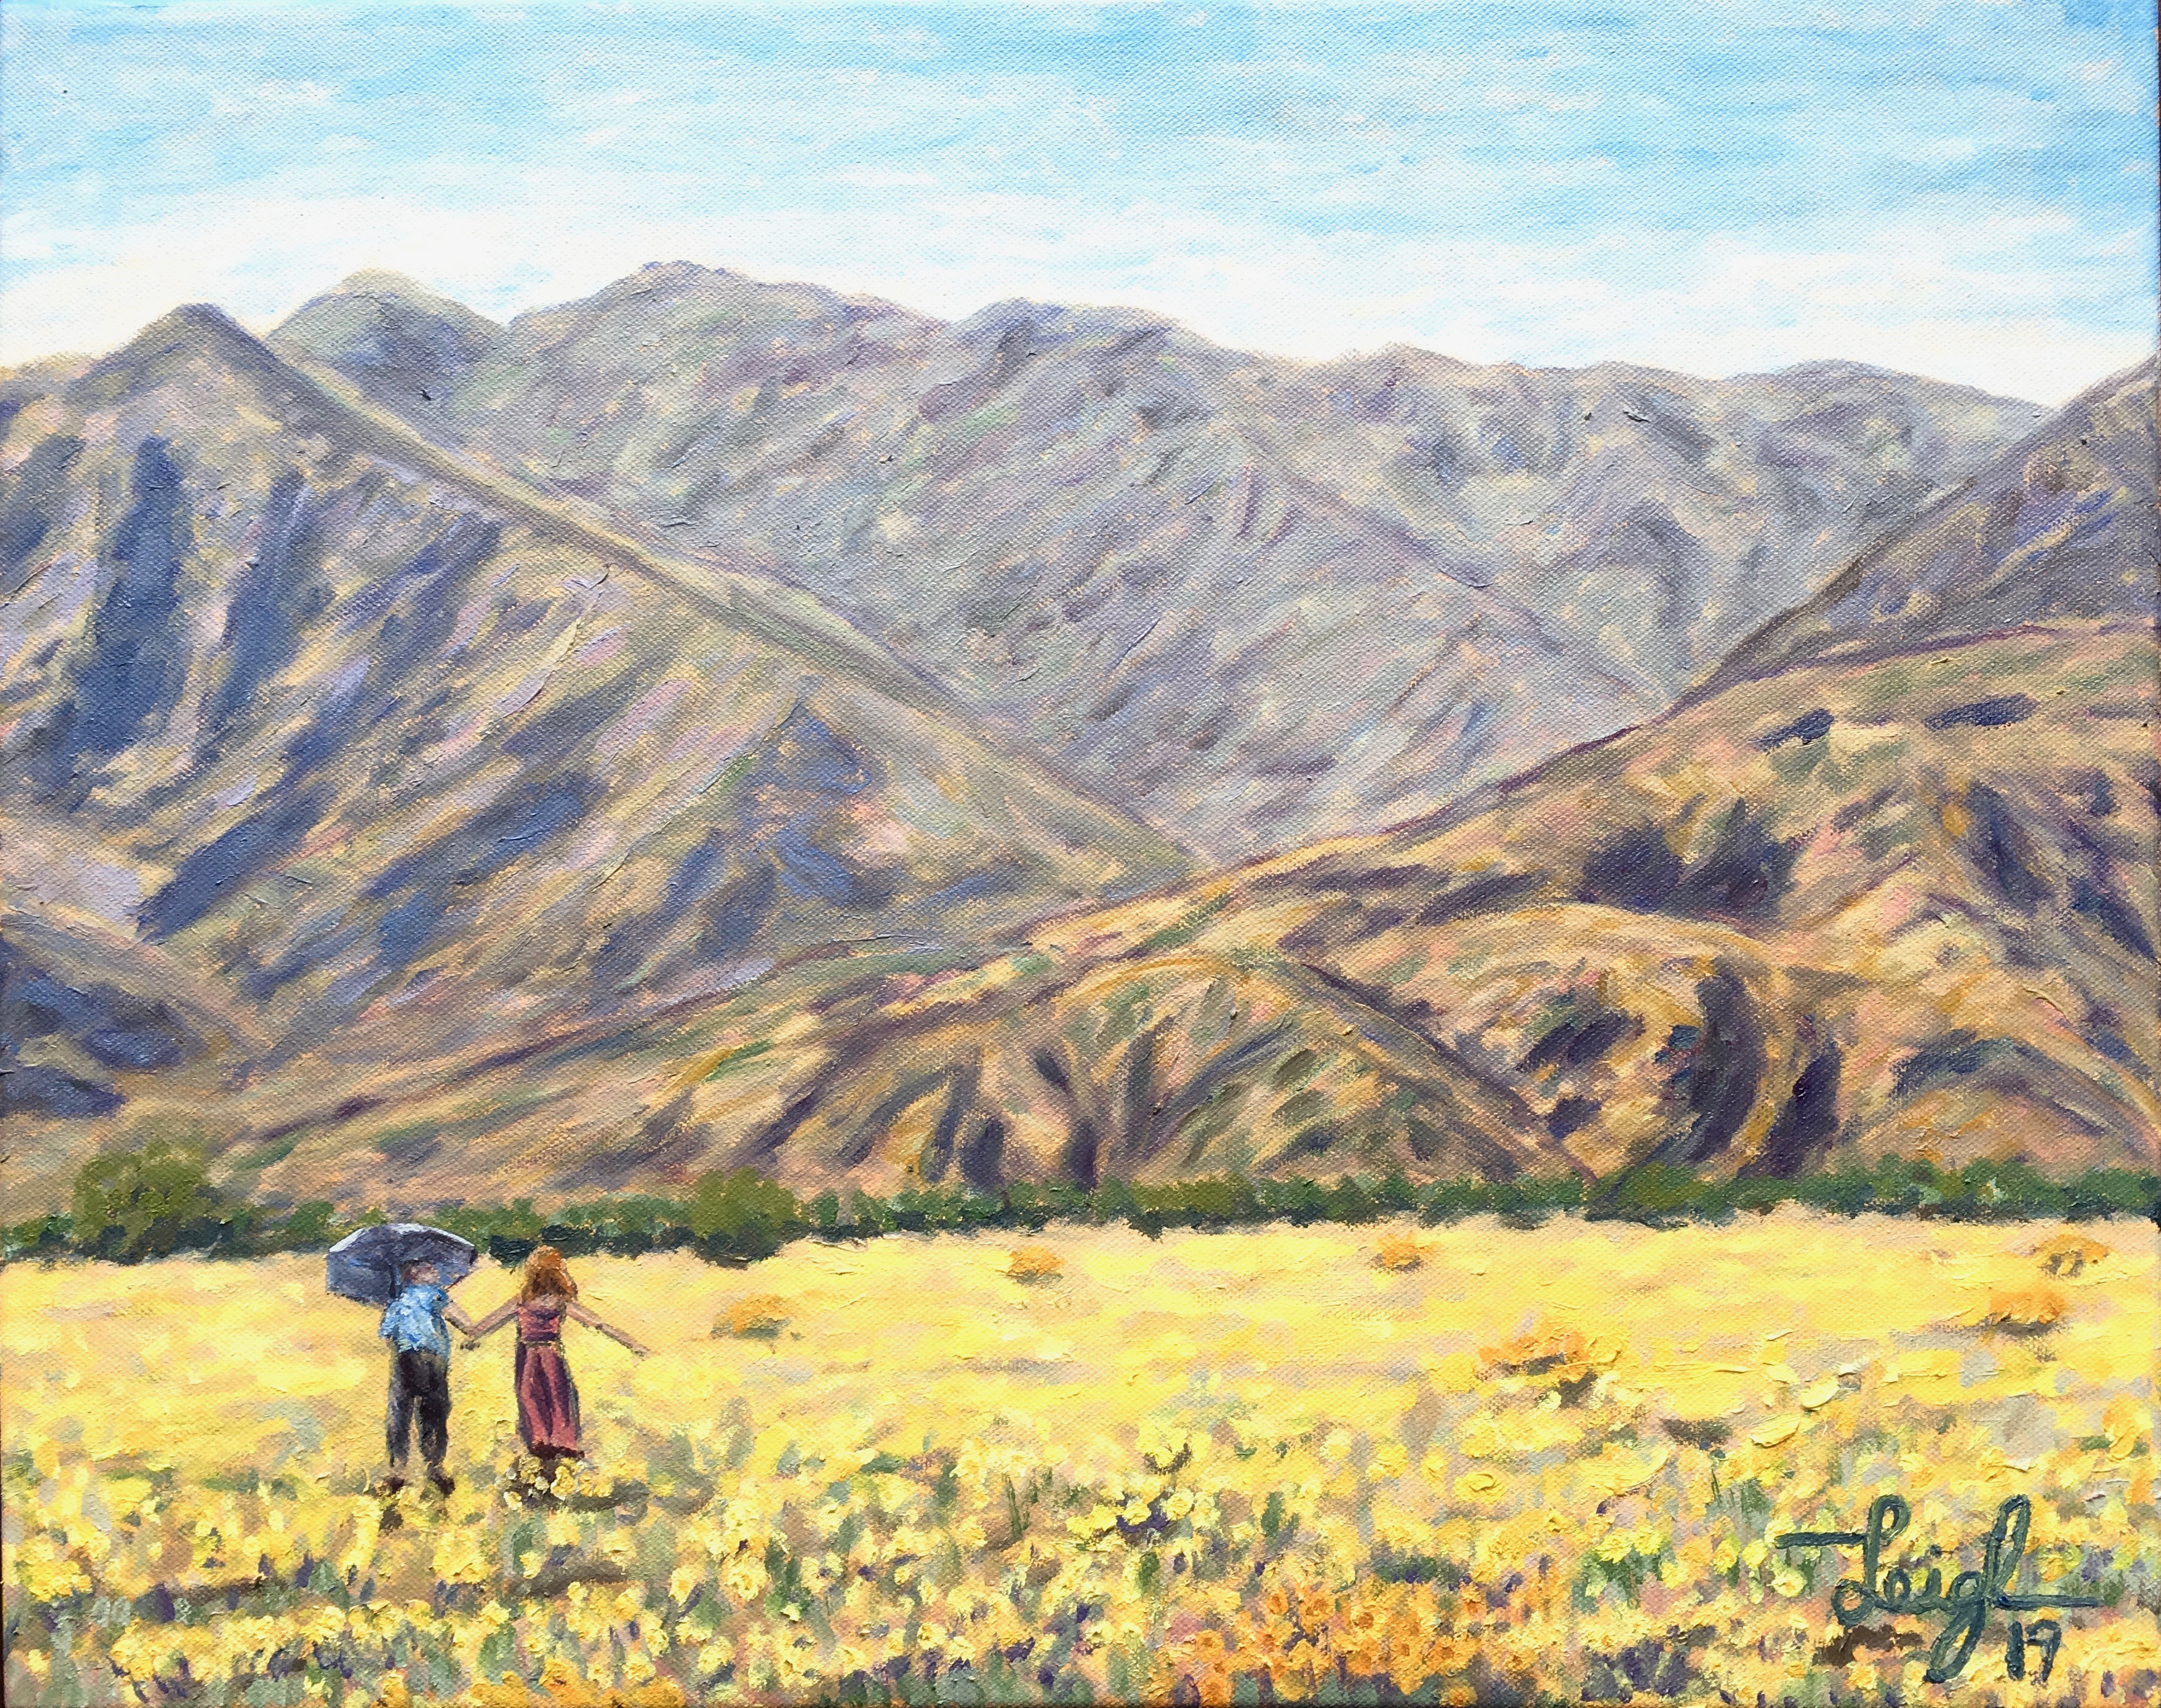 Anza Super Bloom #3 (The Couple) 2019  •  20 x 16